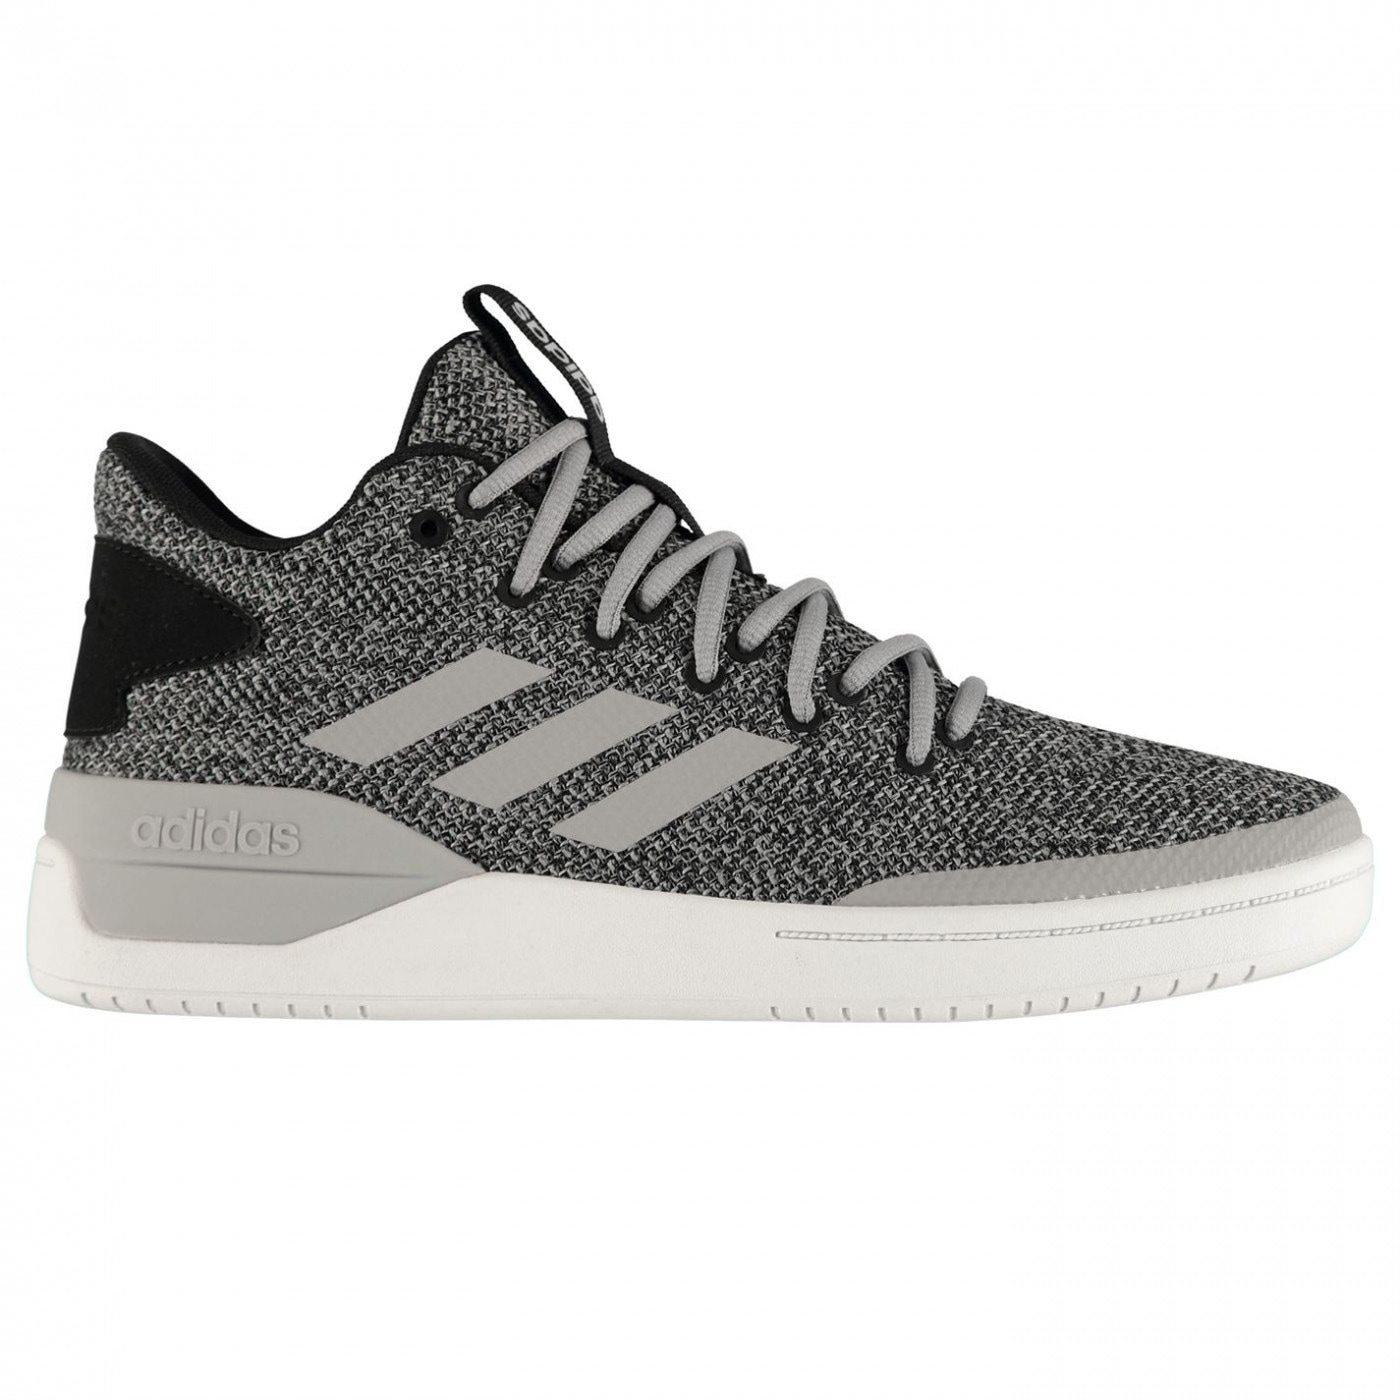 online retailer 2be79 cdda1 Adidas Retro Basketball Trainers Mens